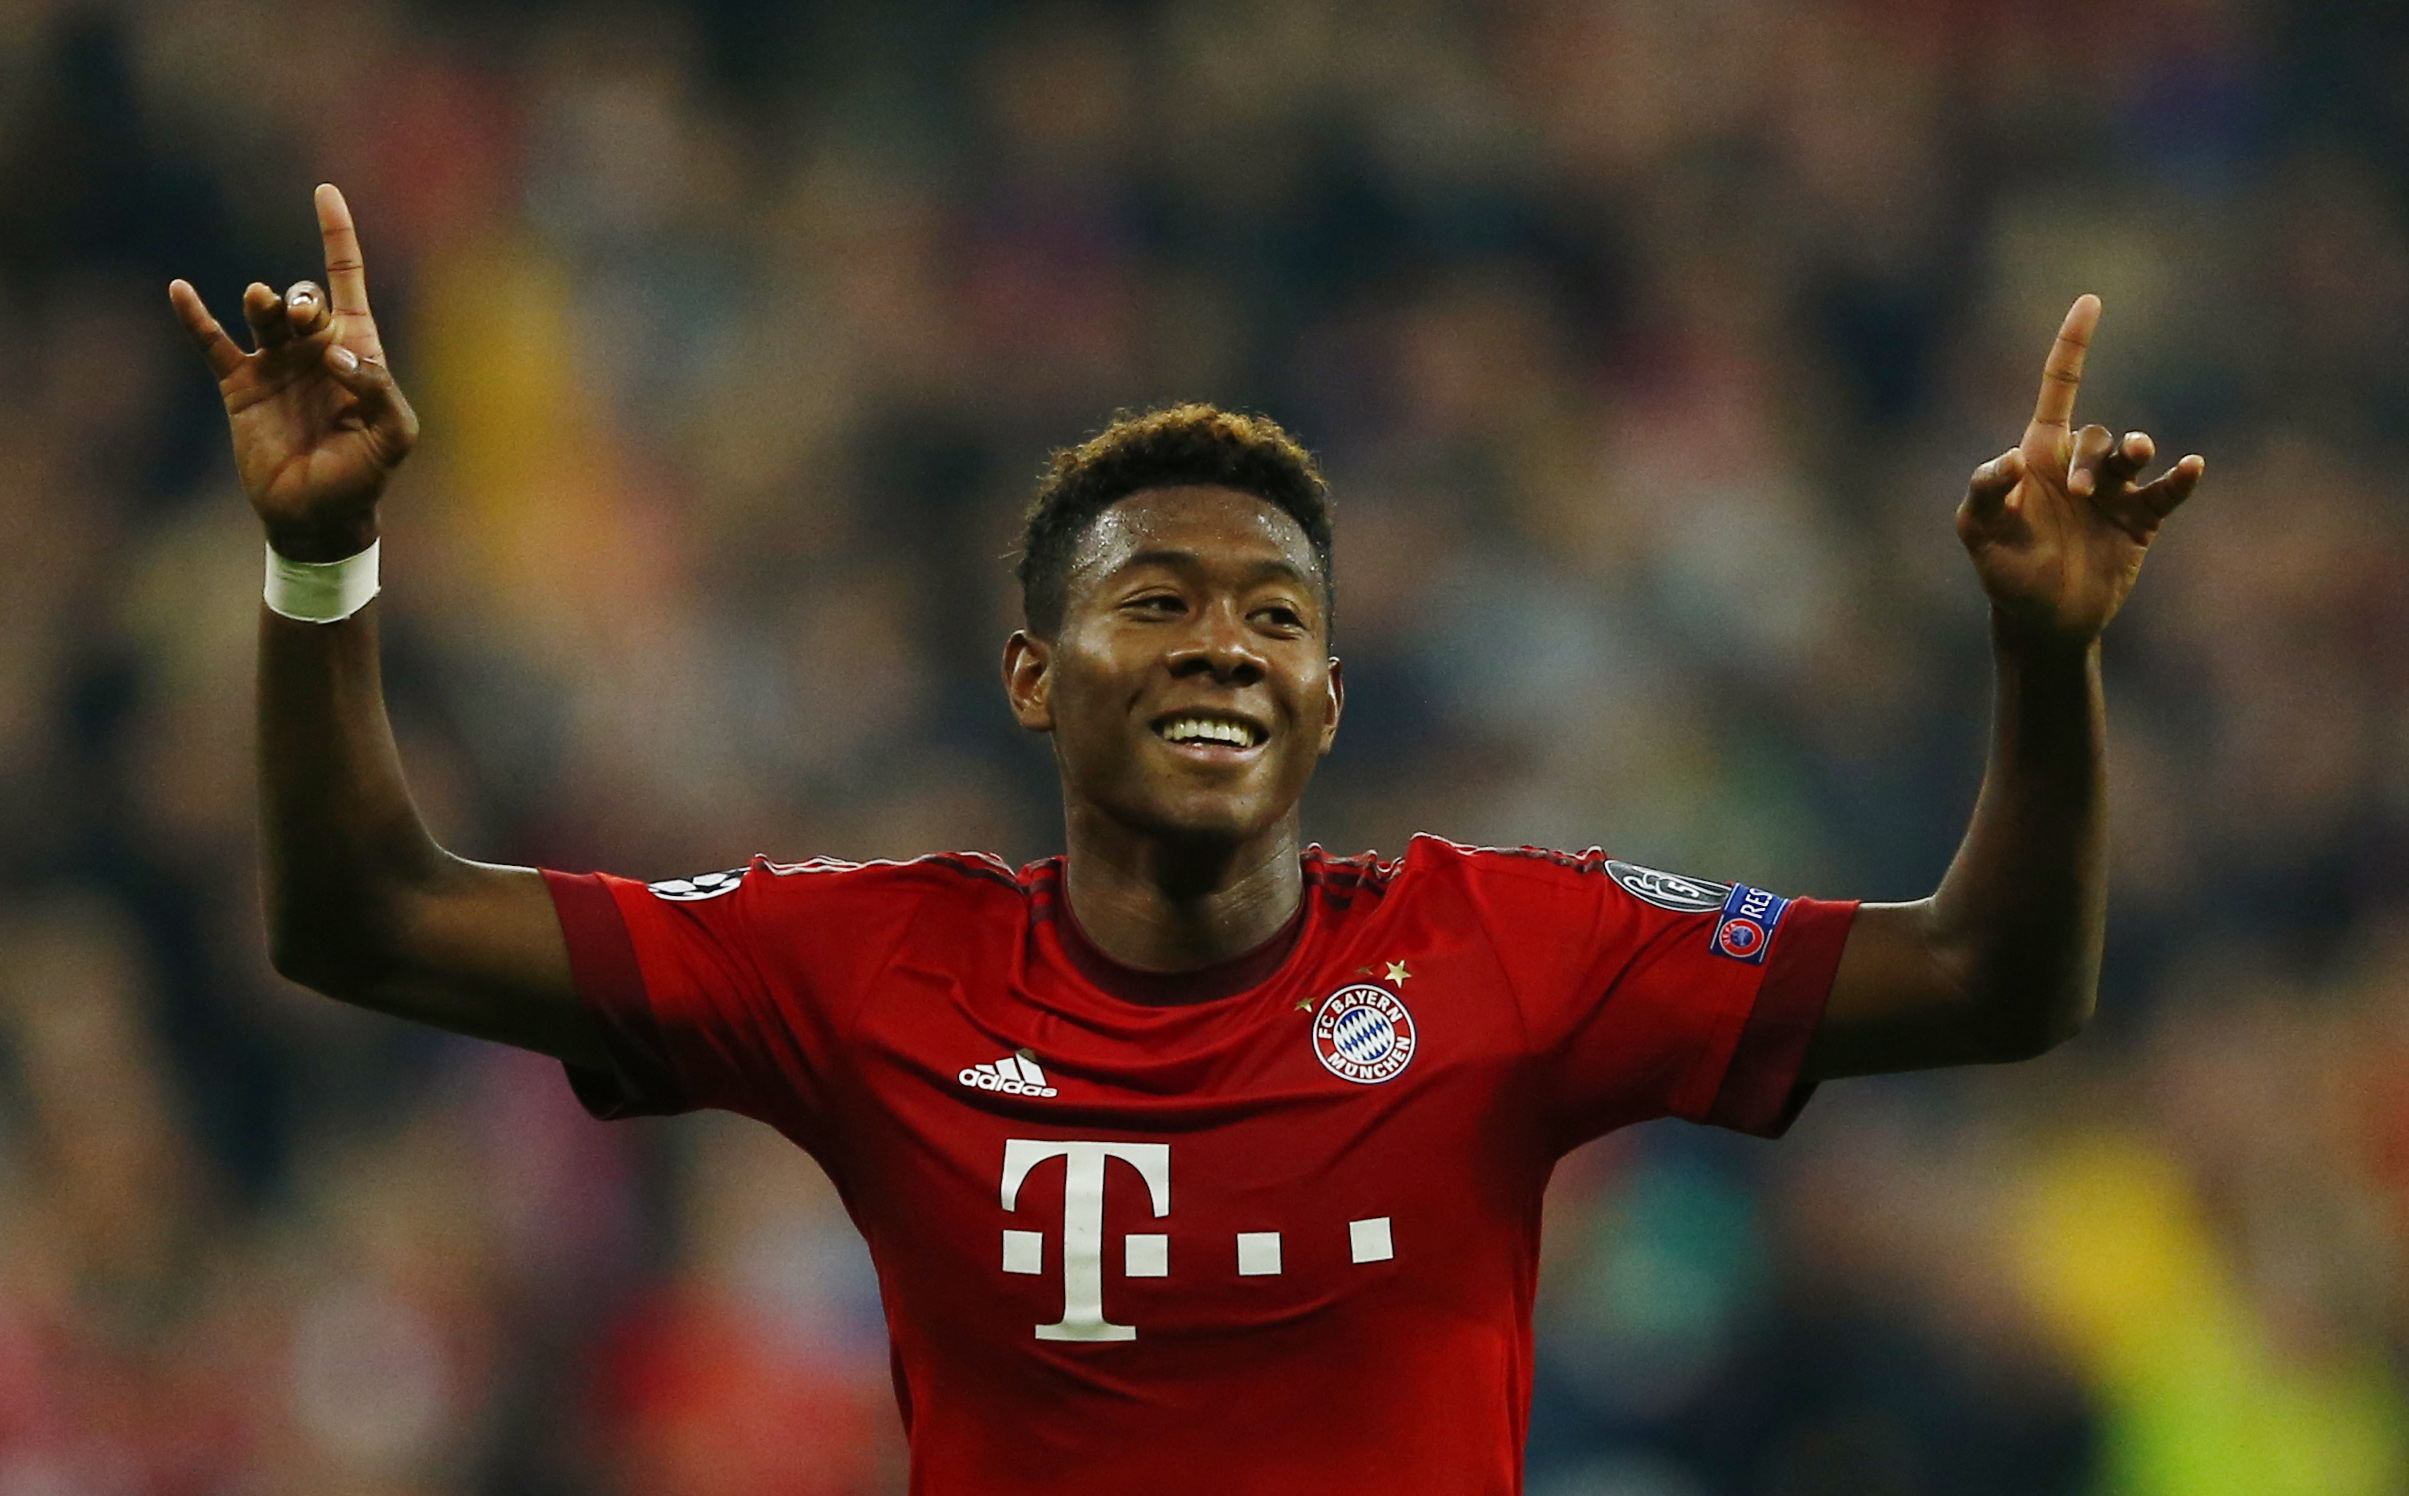 David Alaba celebrates after scoring the third goal for Bayern Munich against Arsenal during UEFA Champions League at Allianz Arena on November 4, 2015. Photo: Reuters